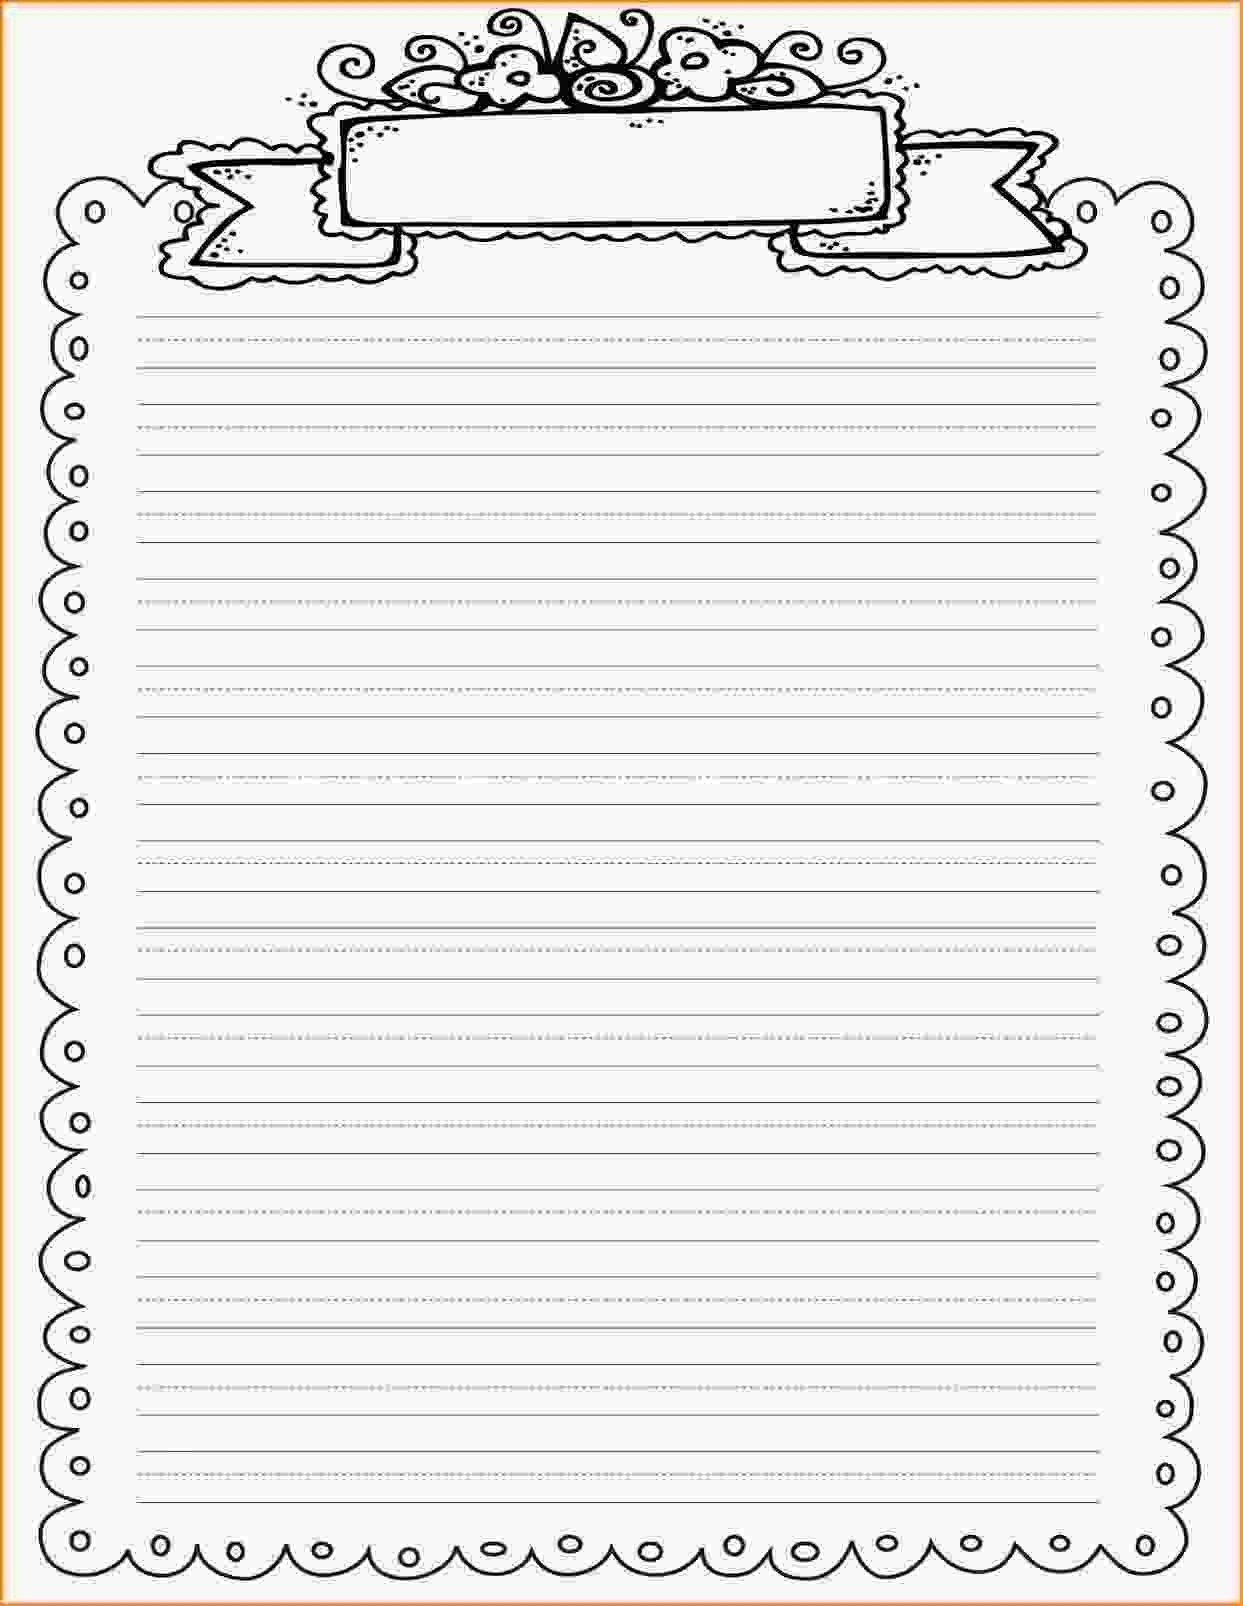 Decorative Border Lined Paper | Vectorborders - Free Printable Writing Paper With Borders